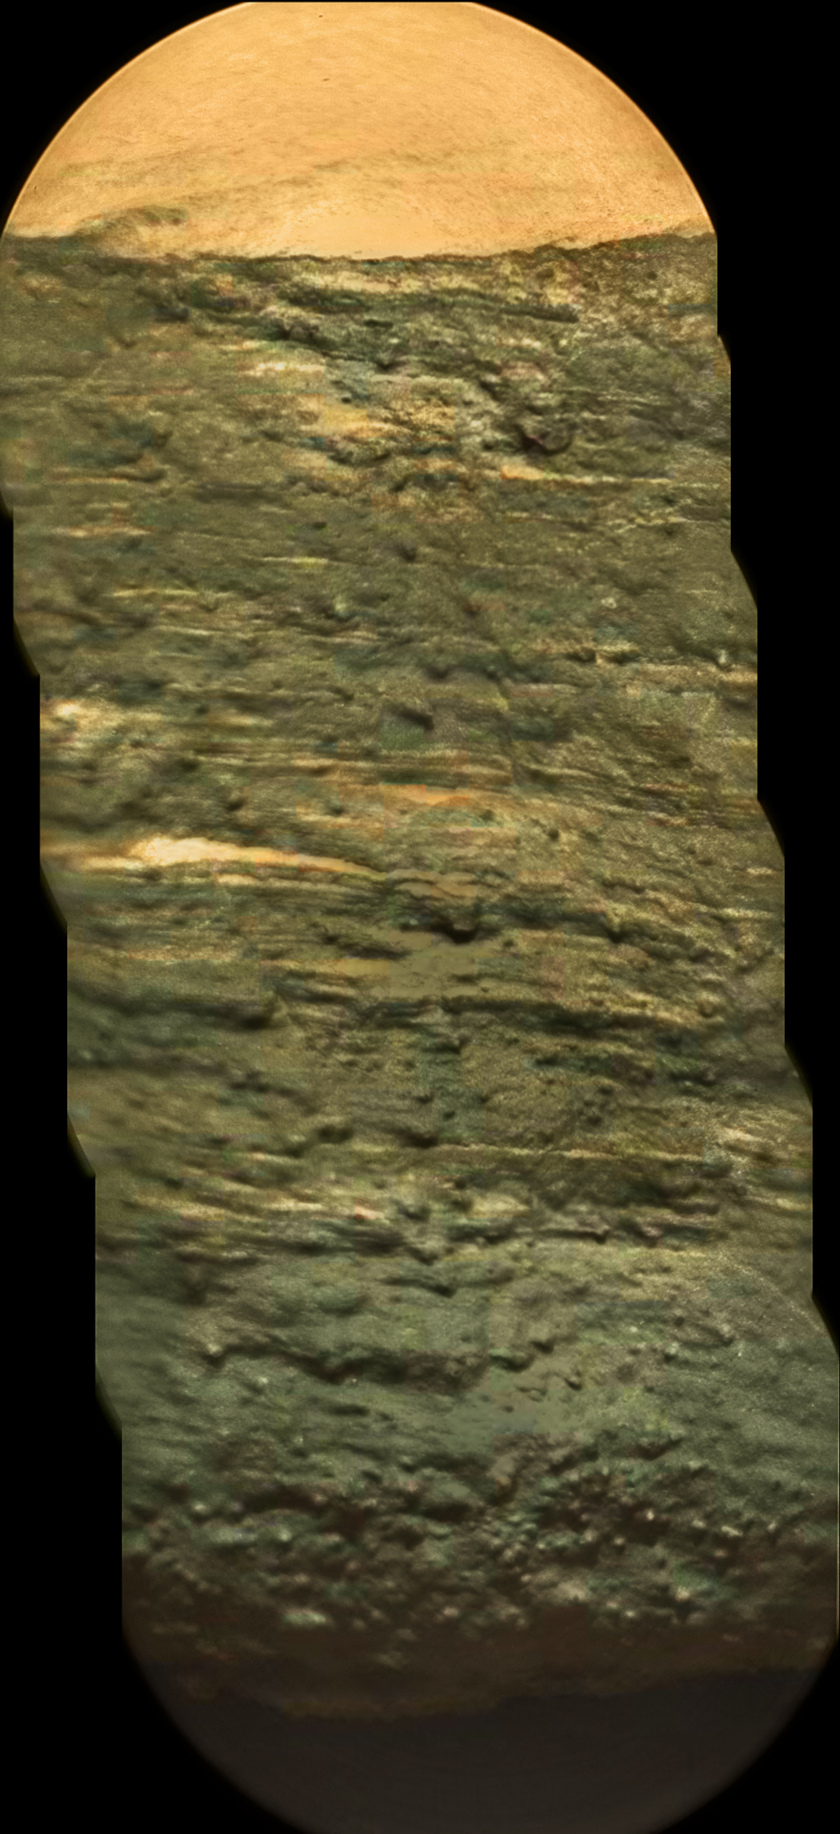 Chemcam RMI mosaic of cross section of Kimberley outcrop from the north, Curiosity sol 576